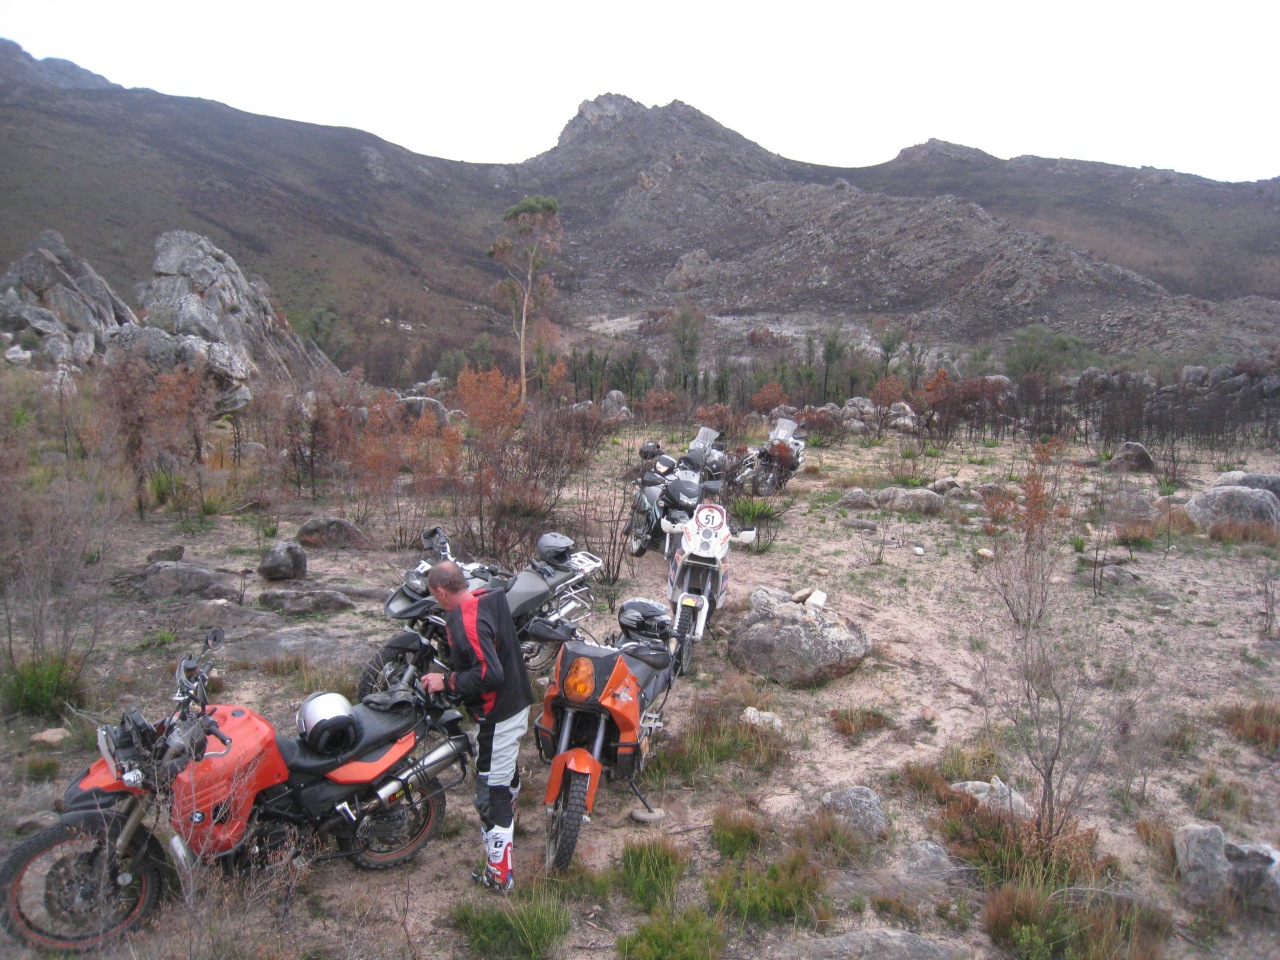 Doing some off road trail riding to hone skills